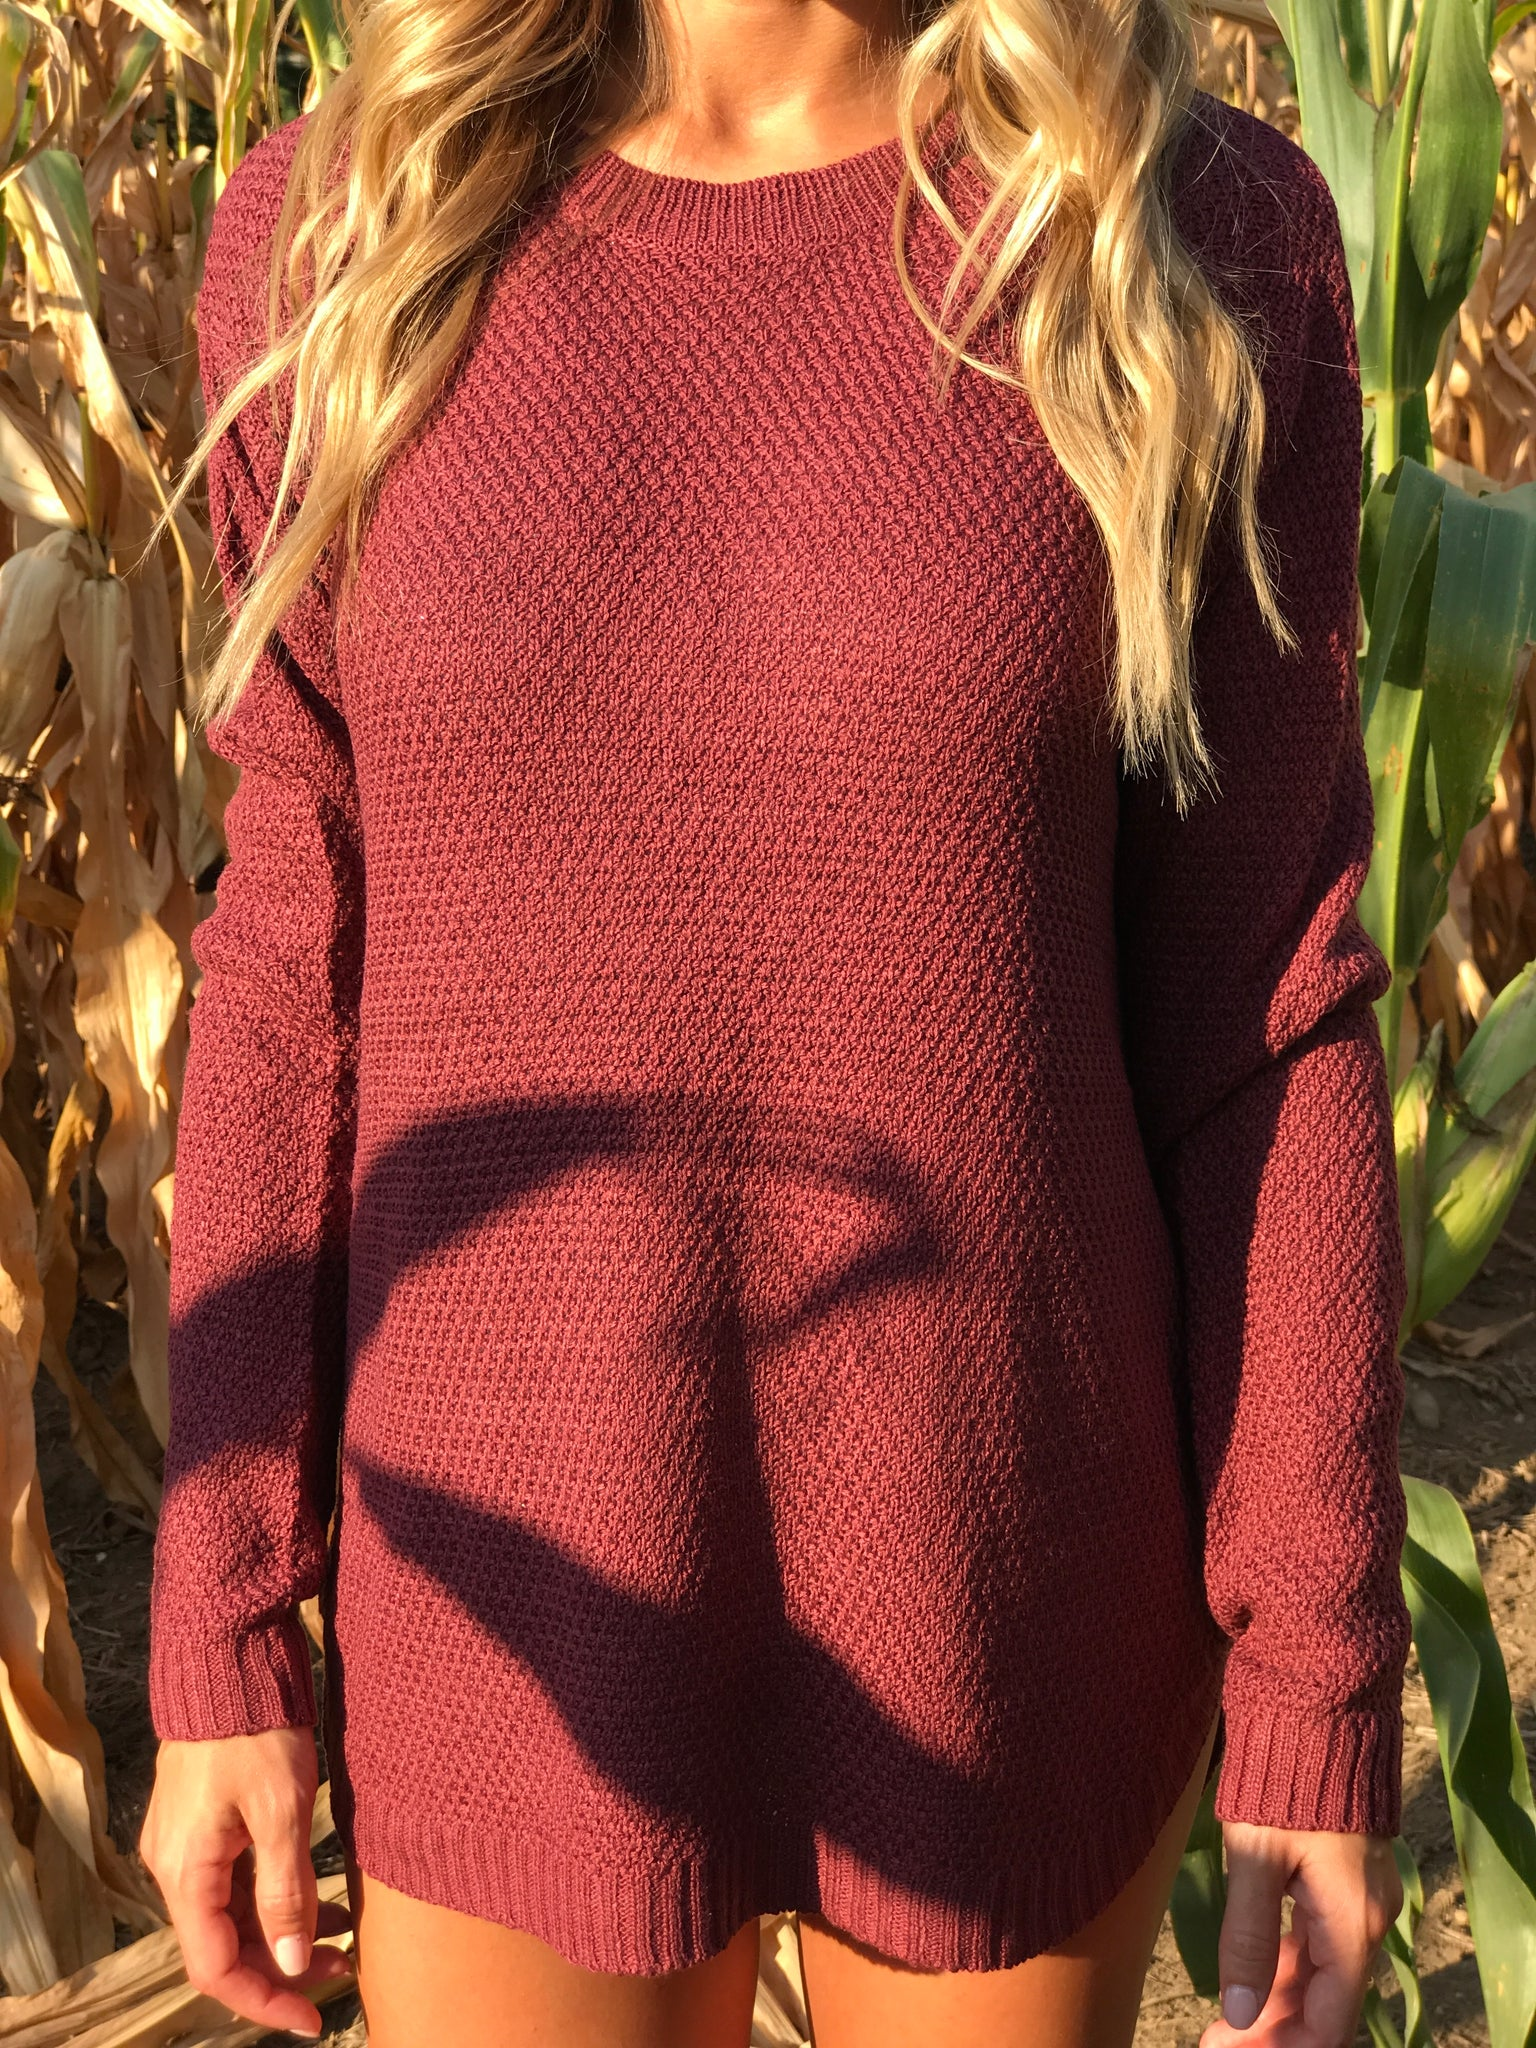 Laguna Knit Sweater